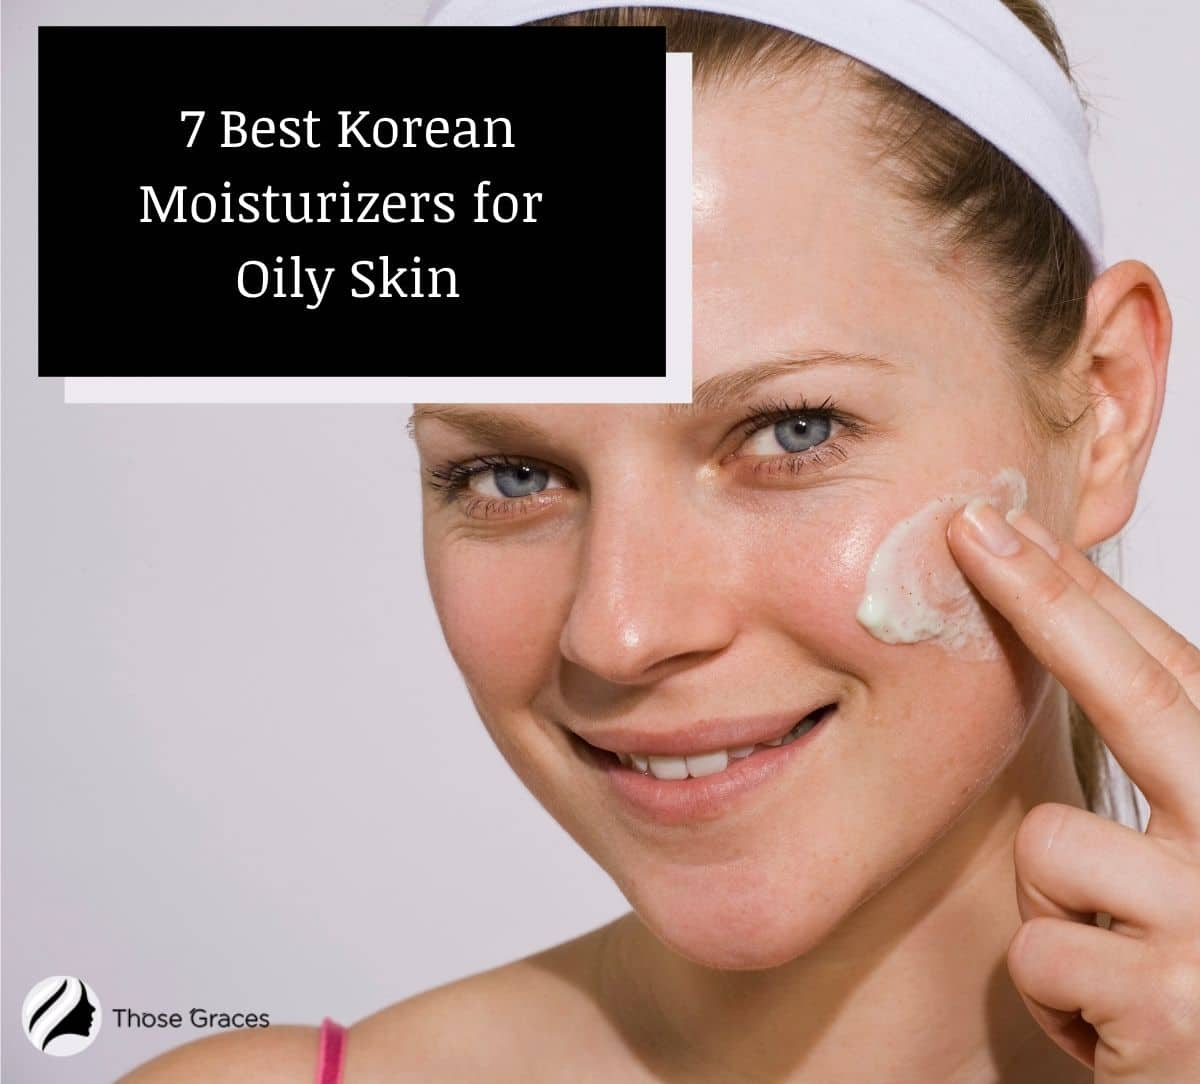 smiling woman using the best korean moisturizer for oily skin for night time routine